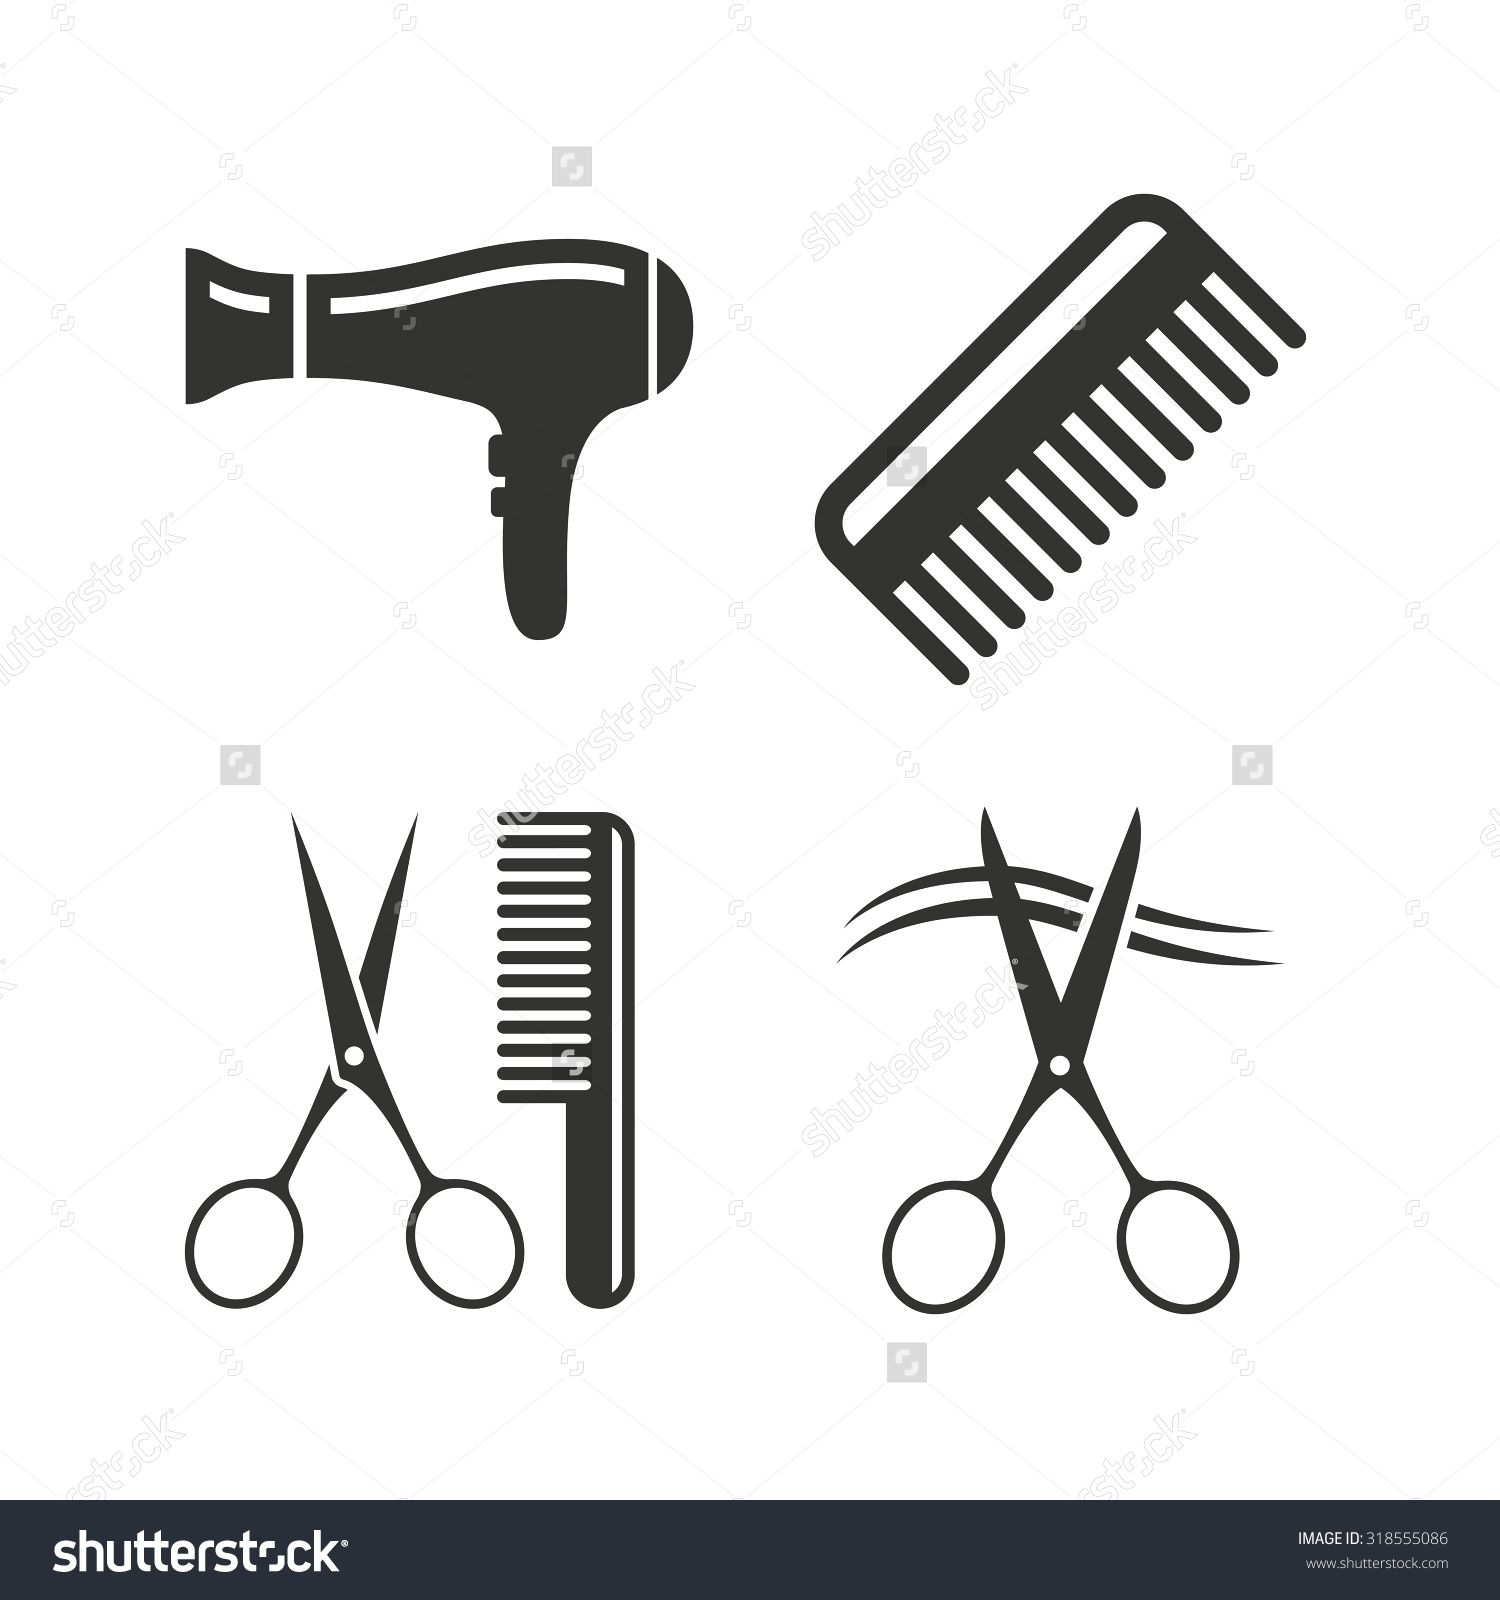 Black and white scissors and blowdryer clipart clip art transparent library Image result for BLOWDRYER CLIPART | SALON IDEAS | Hairdresser logo ... clip art transparent library